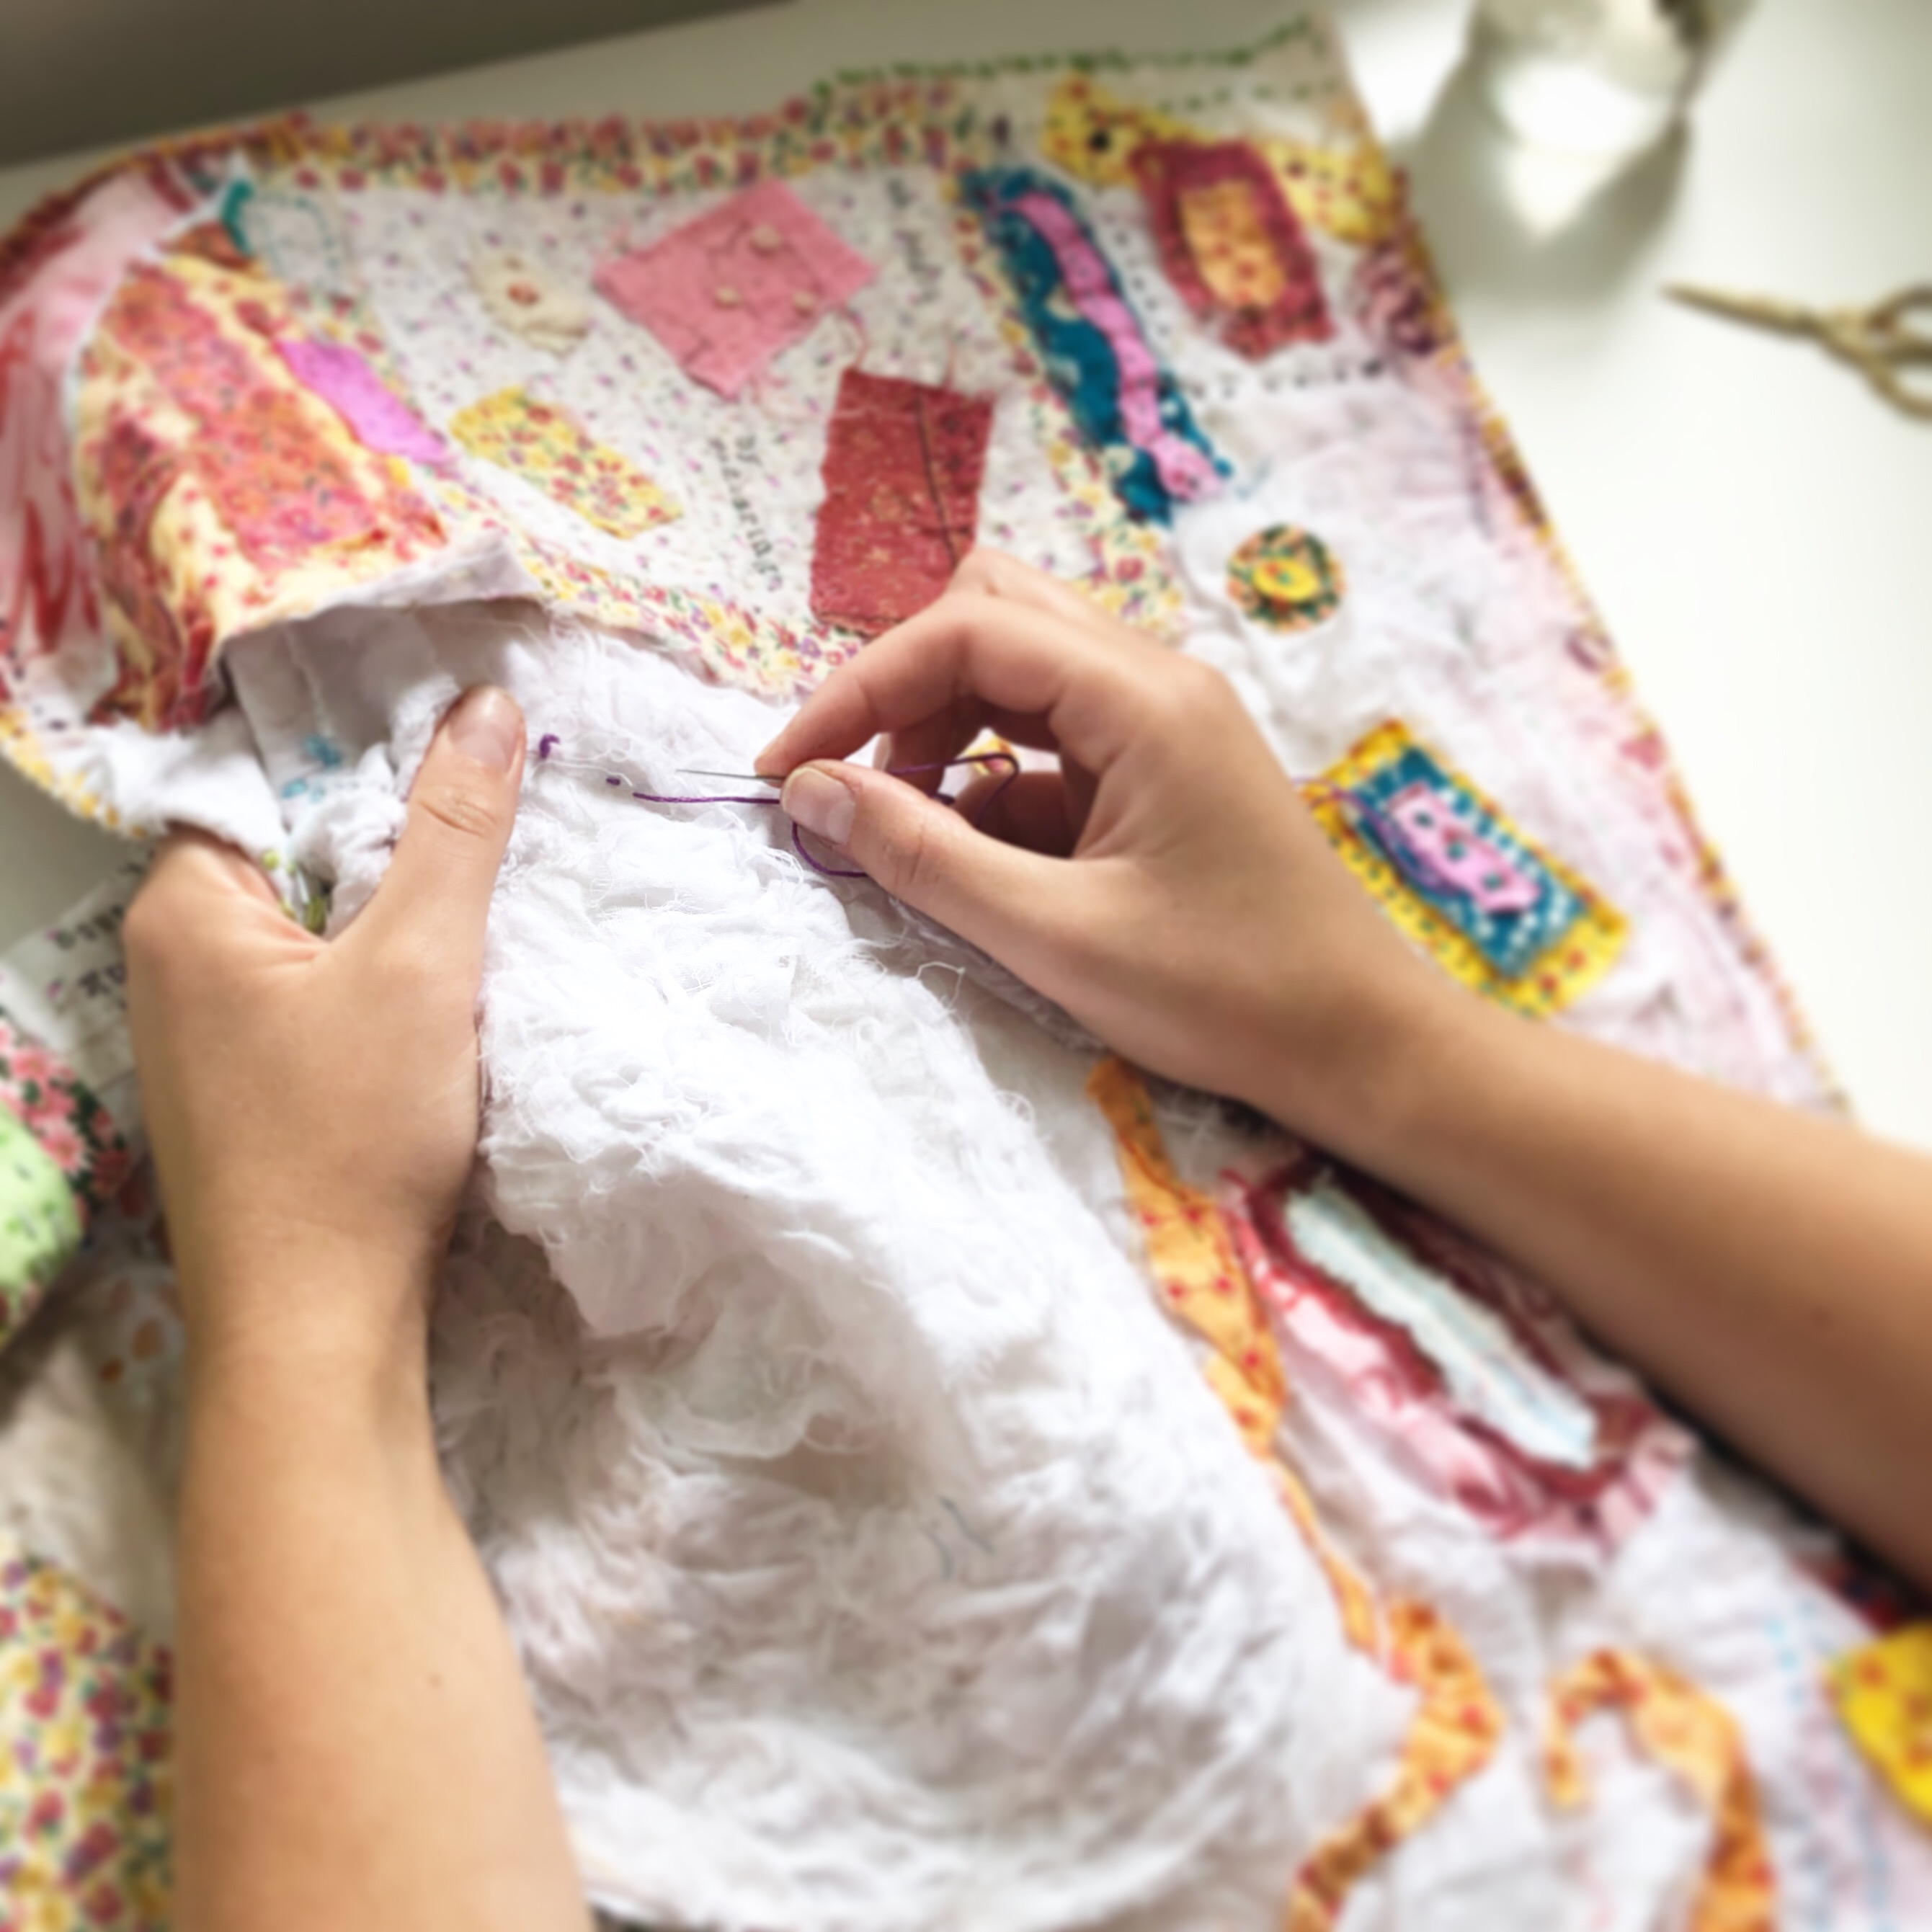 A pair of female hands holding a large piece of white fabric partially covered in pastel-toned embroidery and patches while stitching with dark red thread